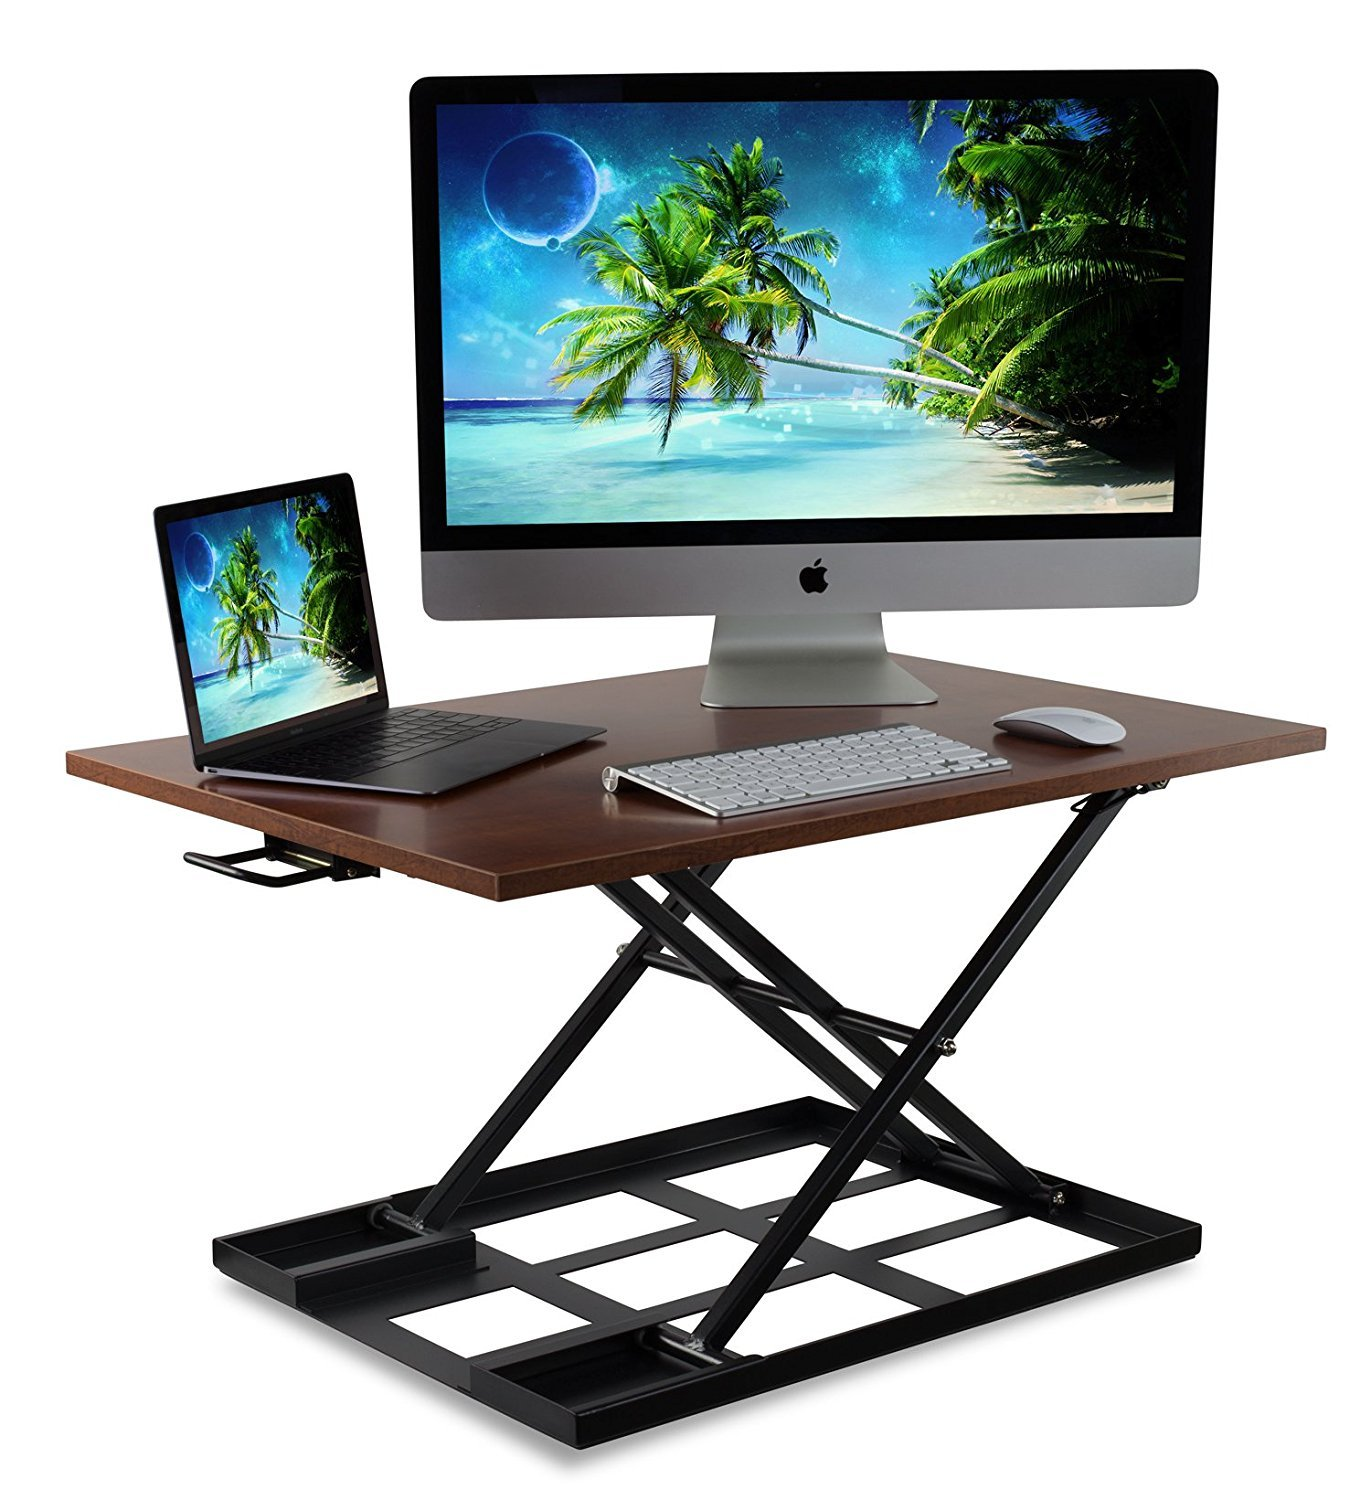 Mount-It! Standing Desk Ergonomic Height Adjustable Sit Stand Desk, 32x22 Inch Preassembled Stand-Up Desk Converter, Holds up to 20 Pounds, Large Surface, Brown by Mount-It!